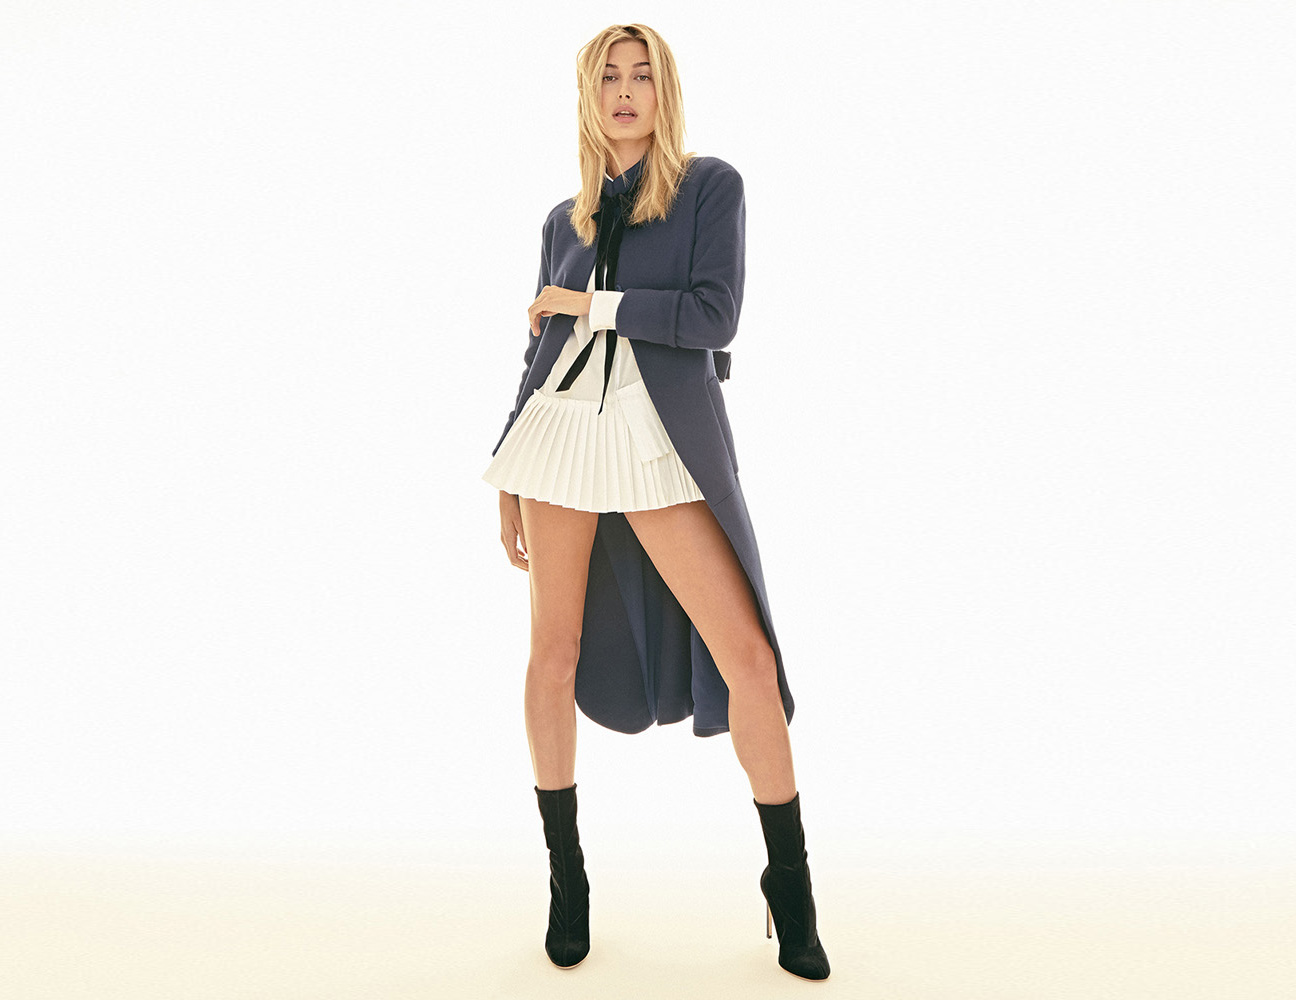 S MODA  / Hailey Baldwin / Celebrity